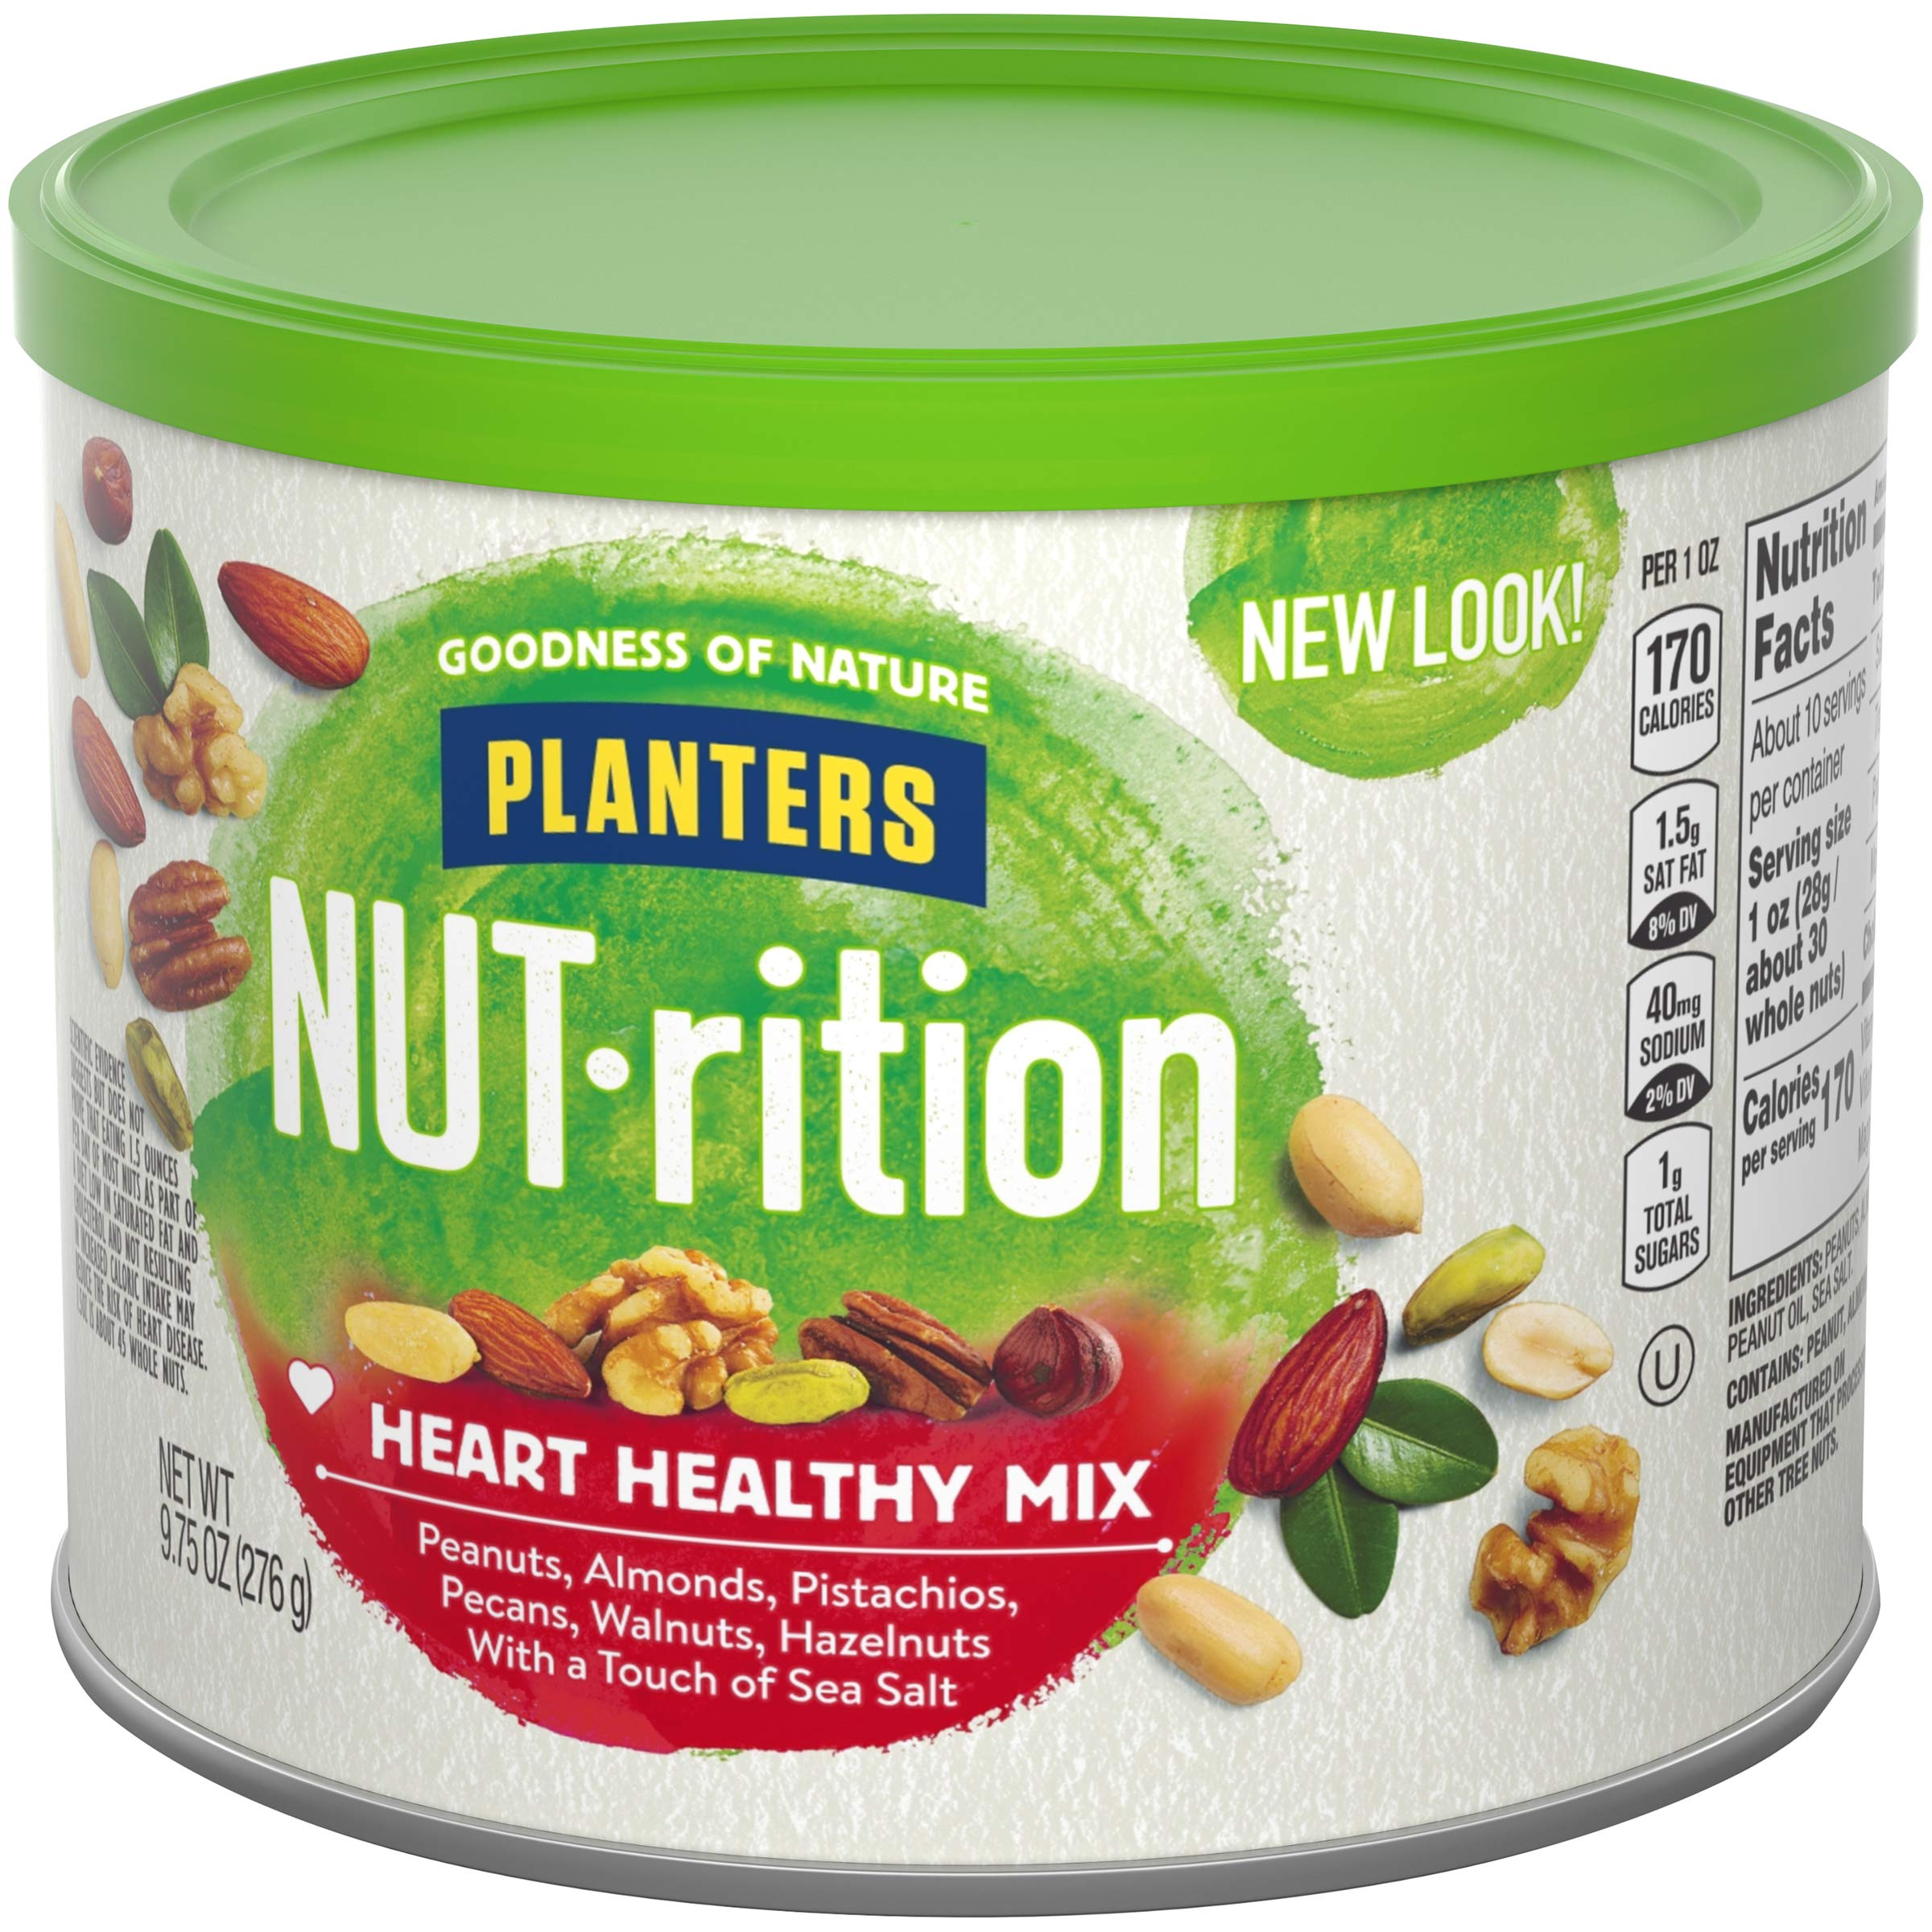 NUTrition Heart Healthy Snack Nut Mix (9.75oz, Pack of 3) by Planters (Image #8)